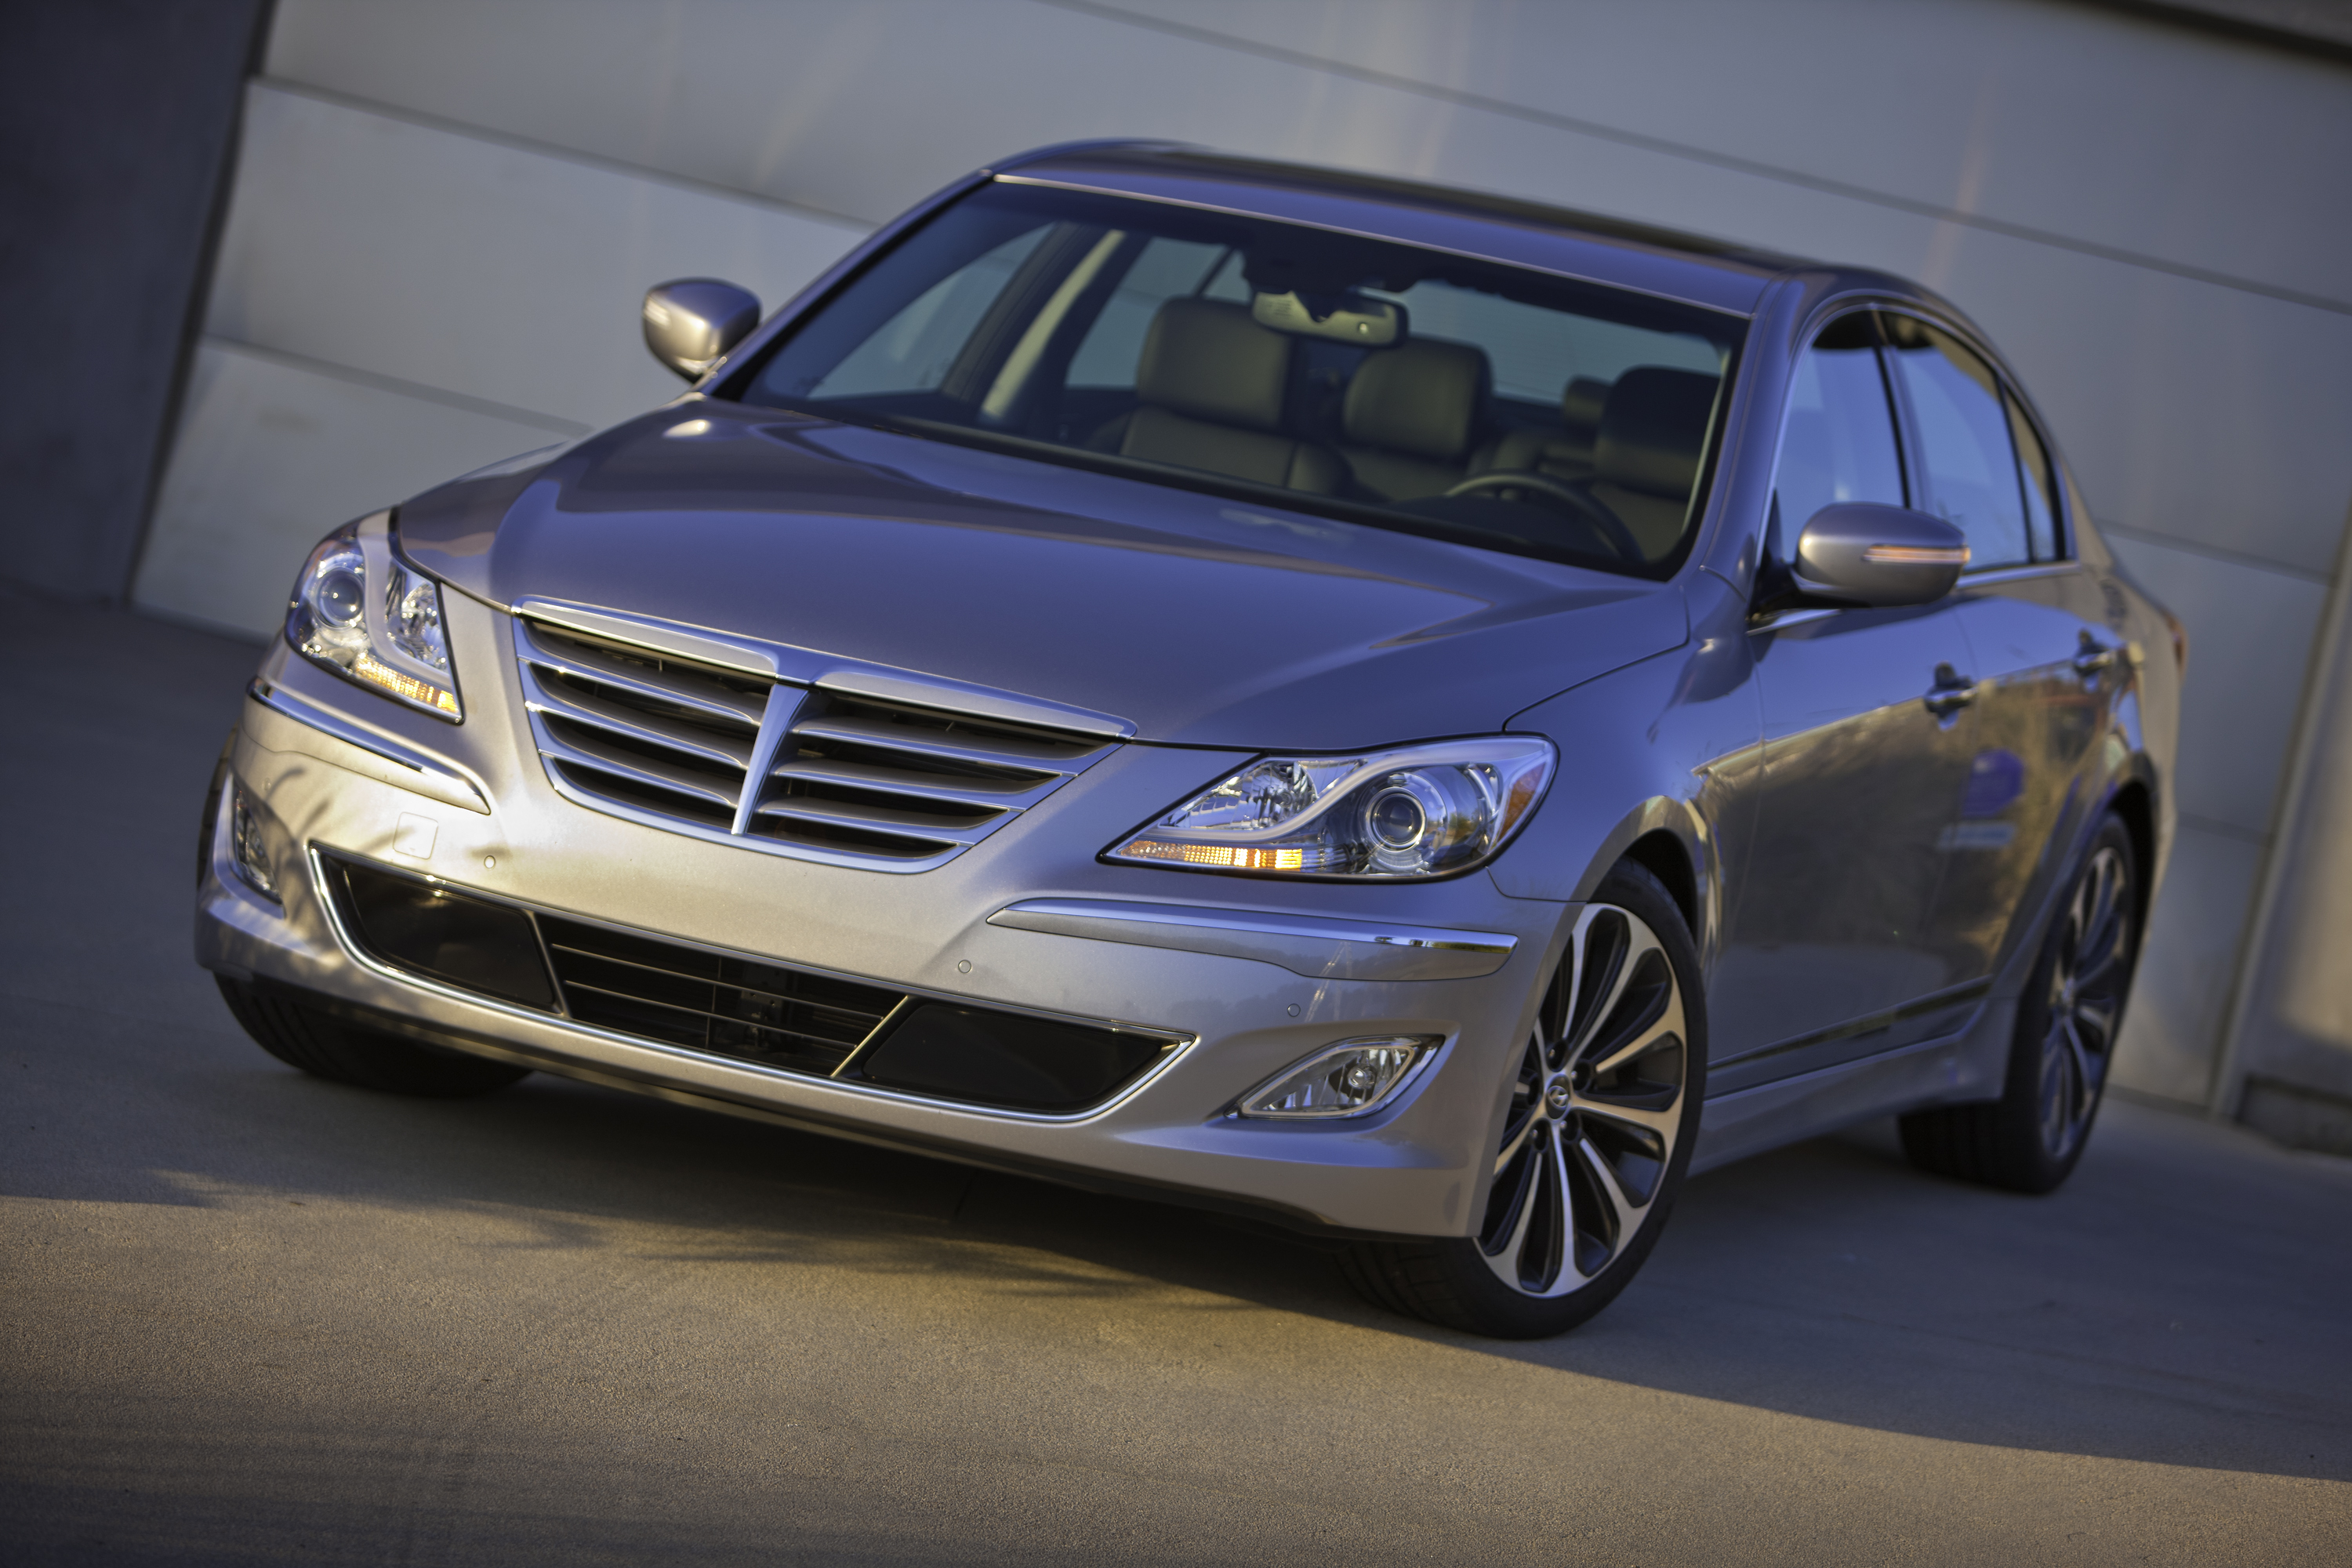 2013 Hyundai Genesis Sedan | Top Speed. »